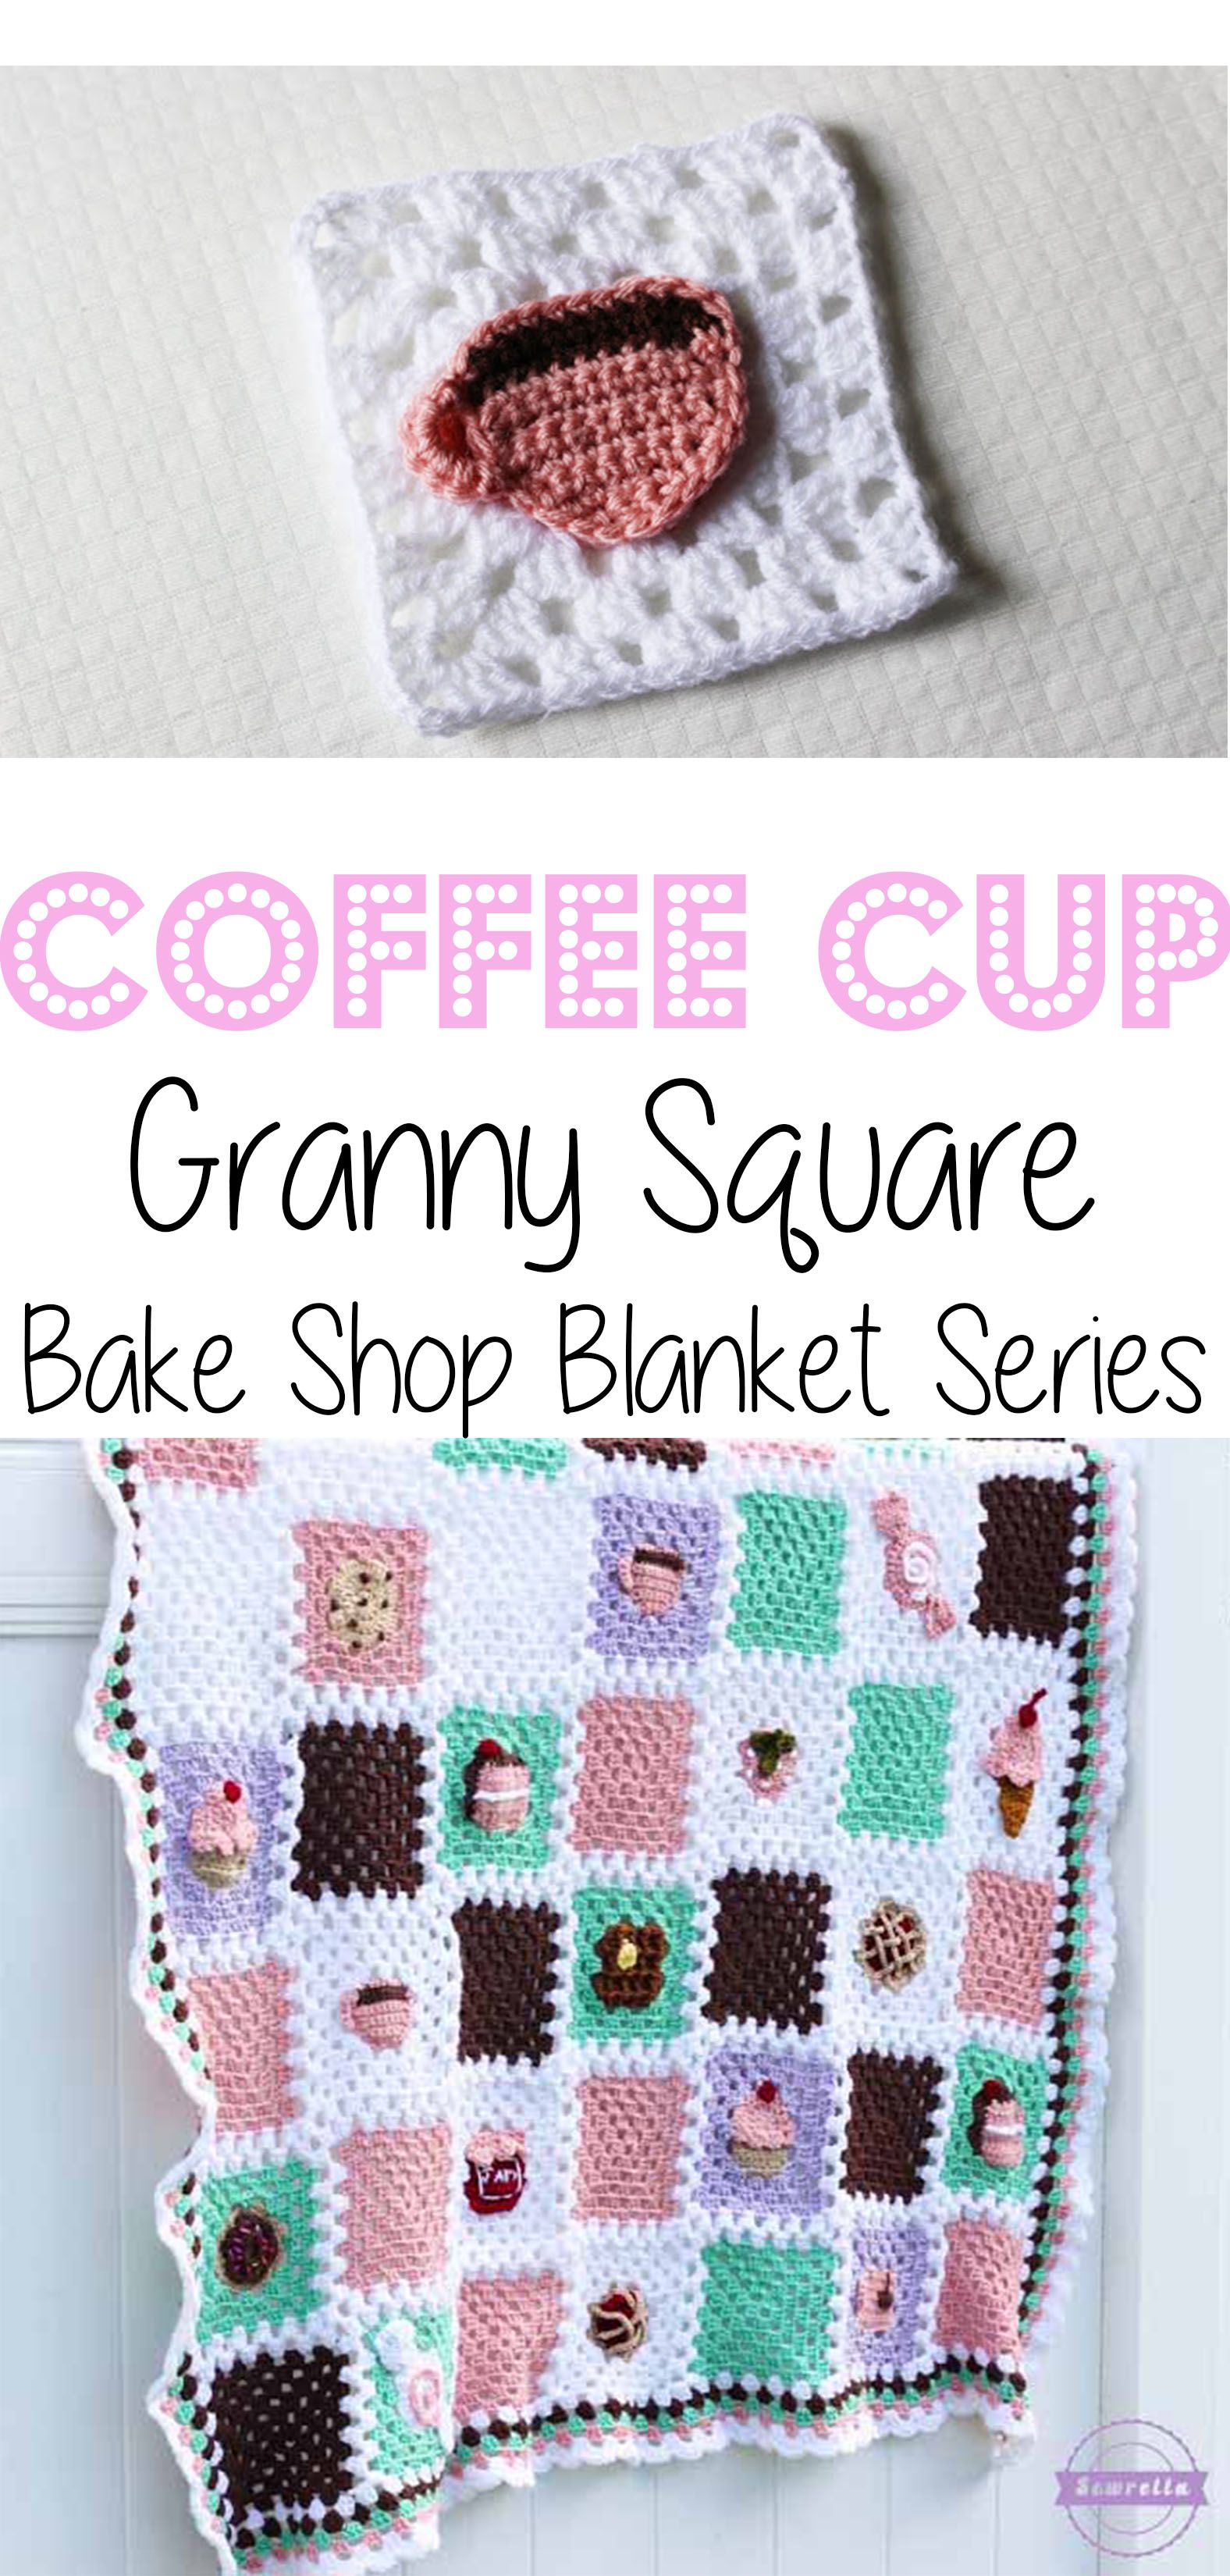 Crochet Coffee Cup Granny Square: Bake Shop Blanket Series | Manta ...